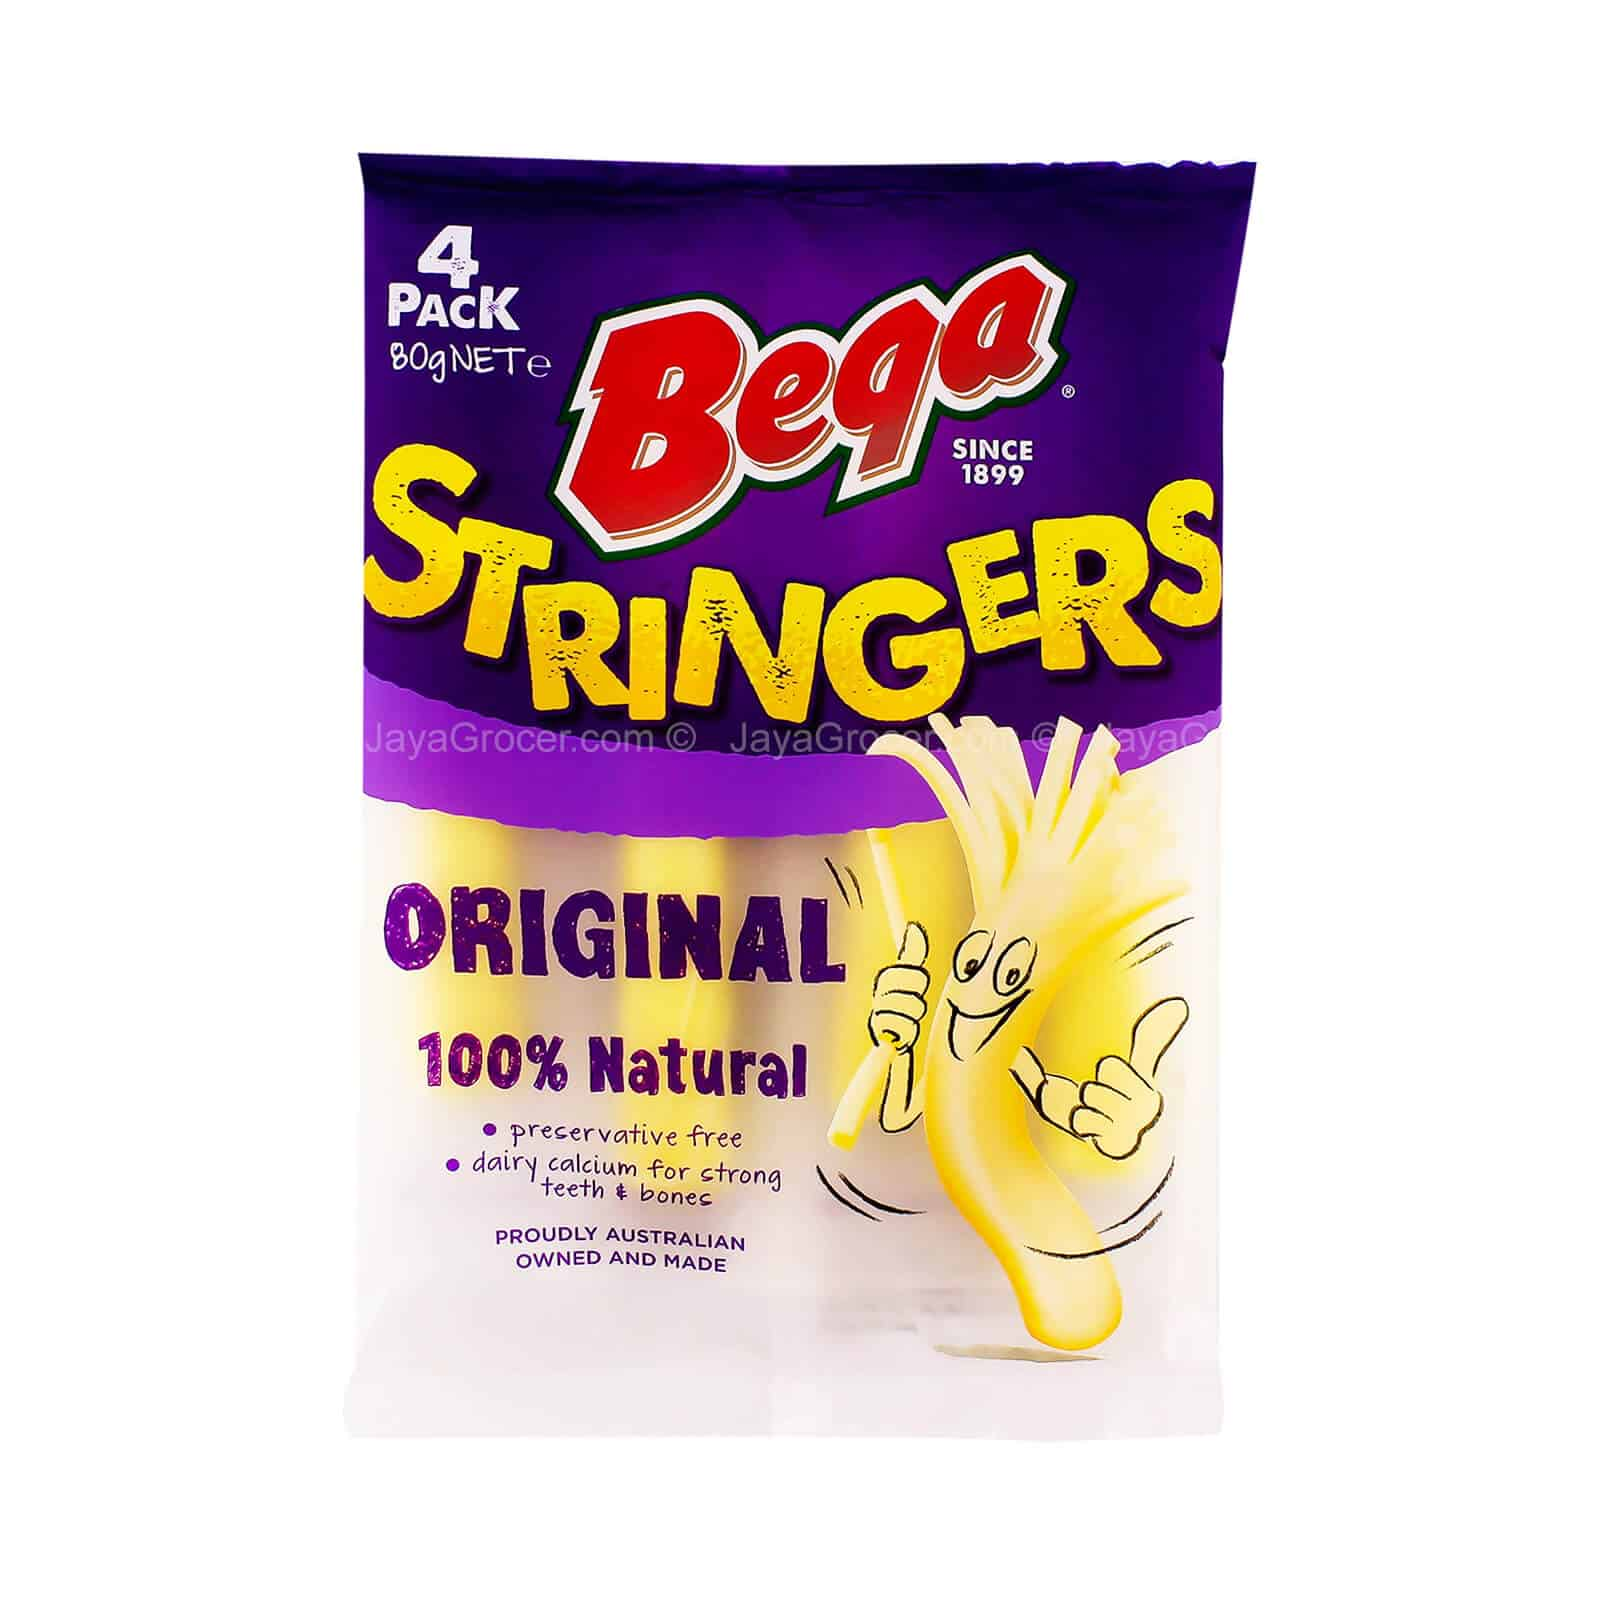 Bega-Stringers-Mozarella-Cheese-Stick